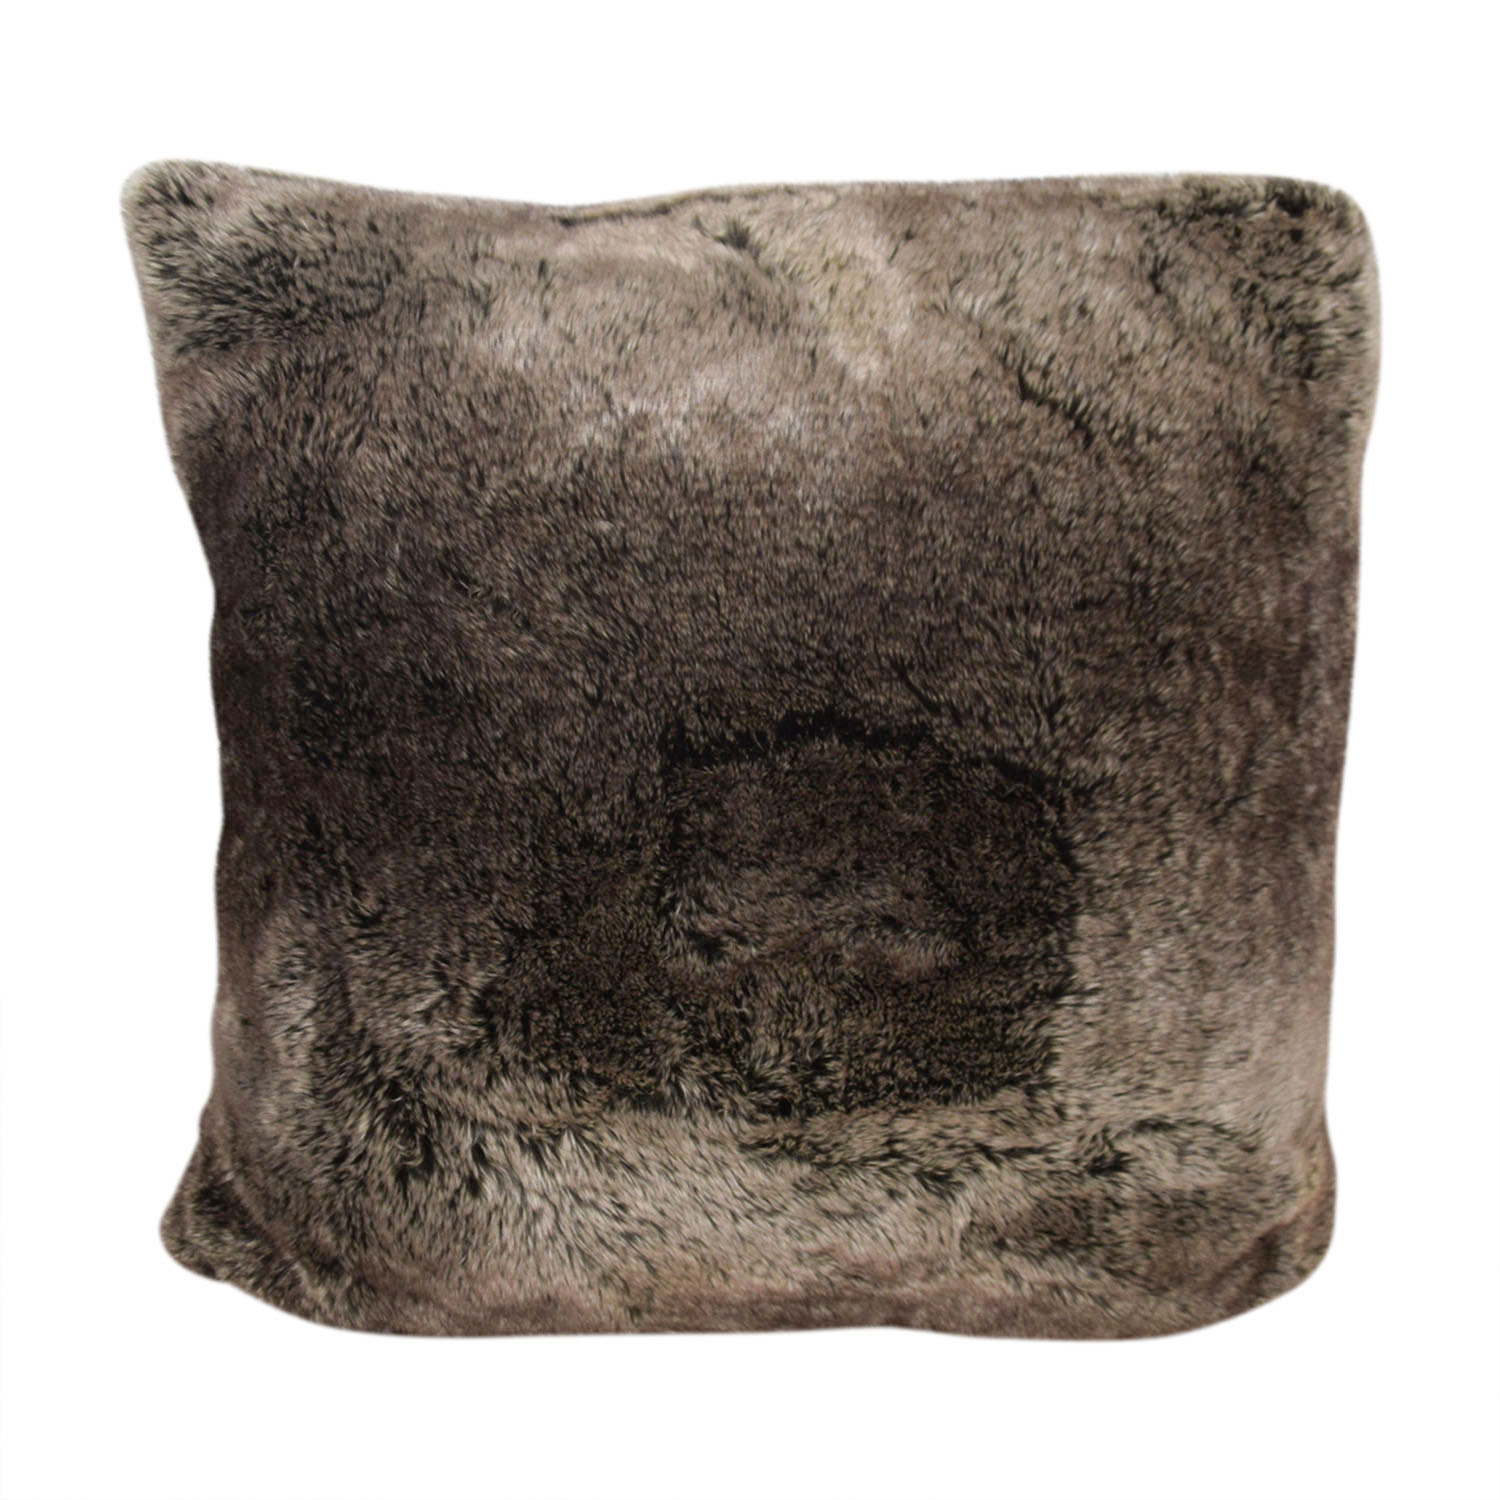 Throw Pillows Rust : 32% OFF - Restoration Hardware Restoration Hardware Faux Fur Decorative Pillow / Decor